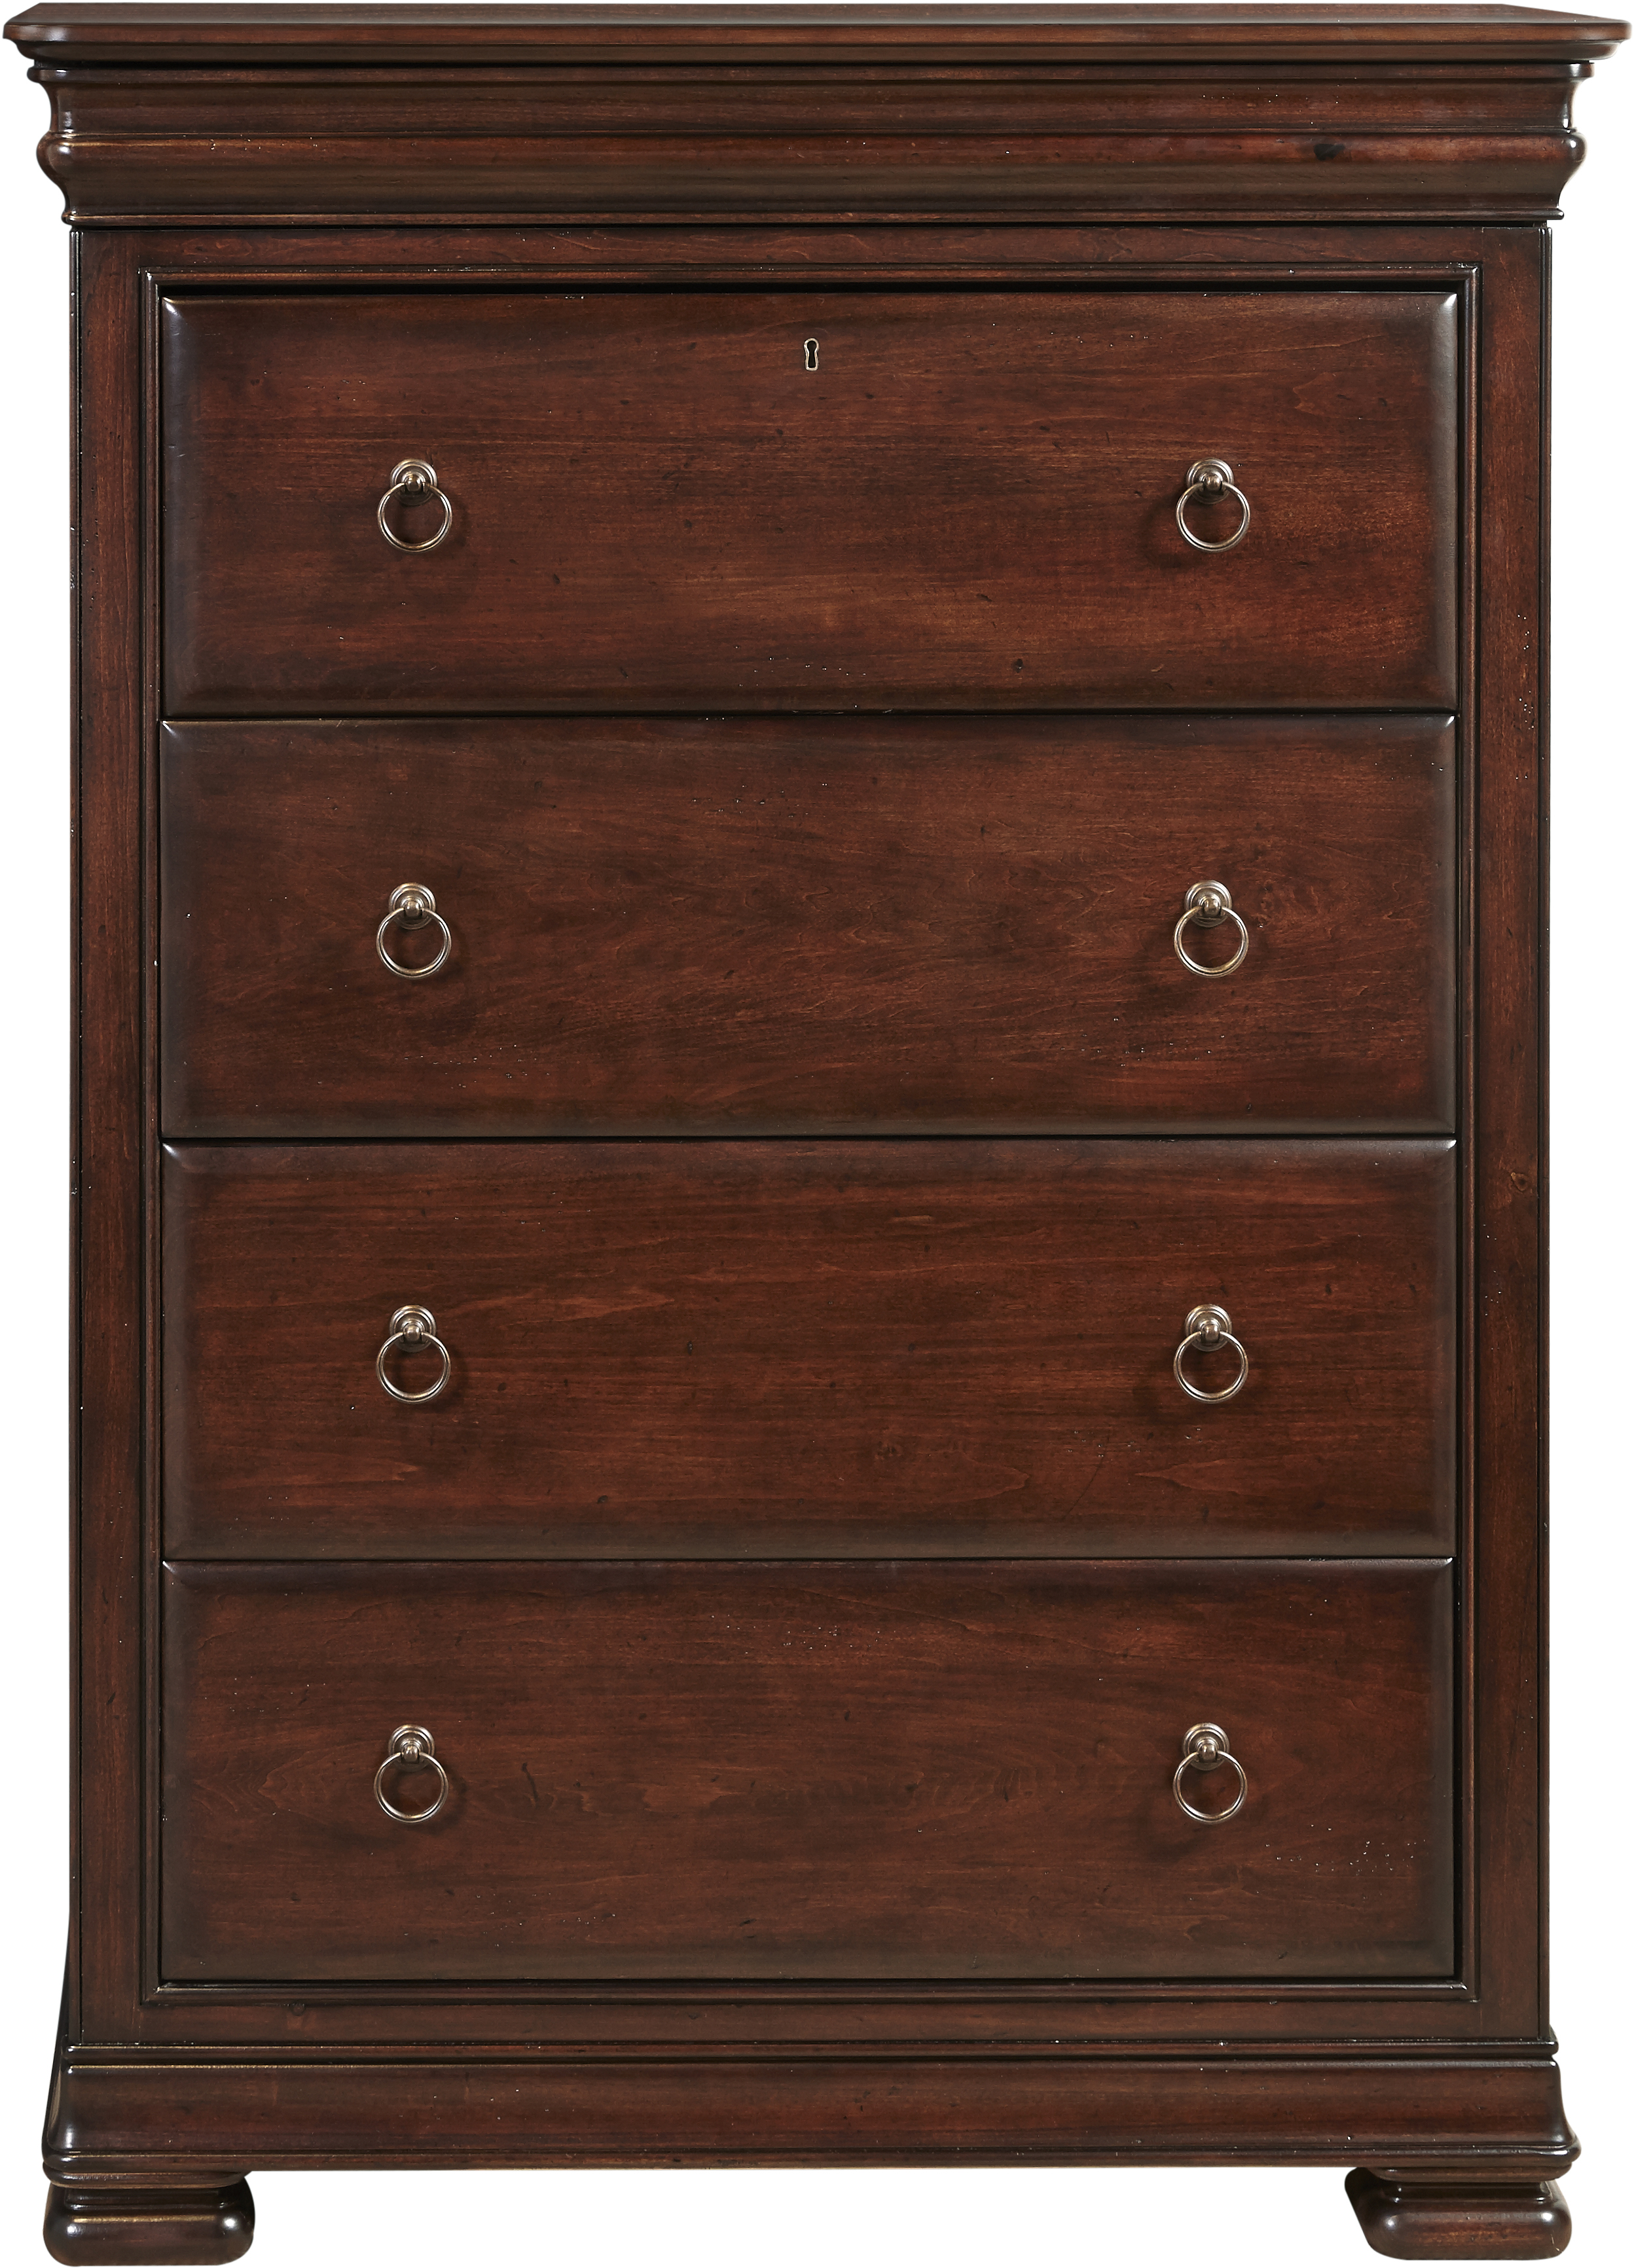 Universal Reprise 4 Drawer Chest With Ring Pull Hardware